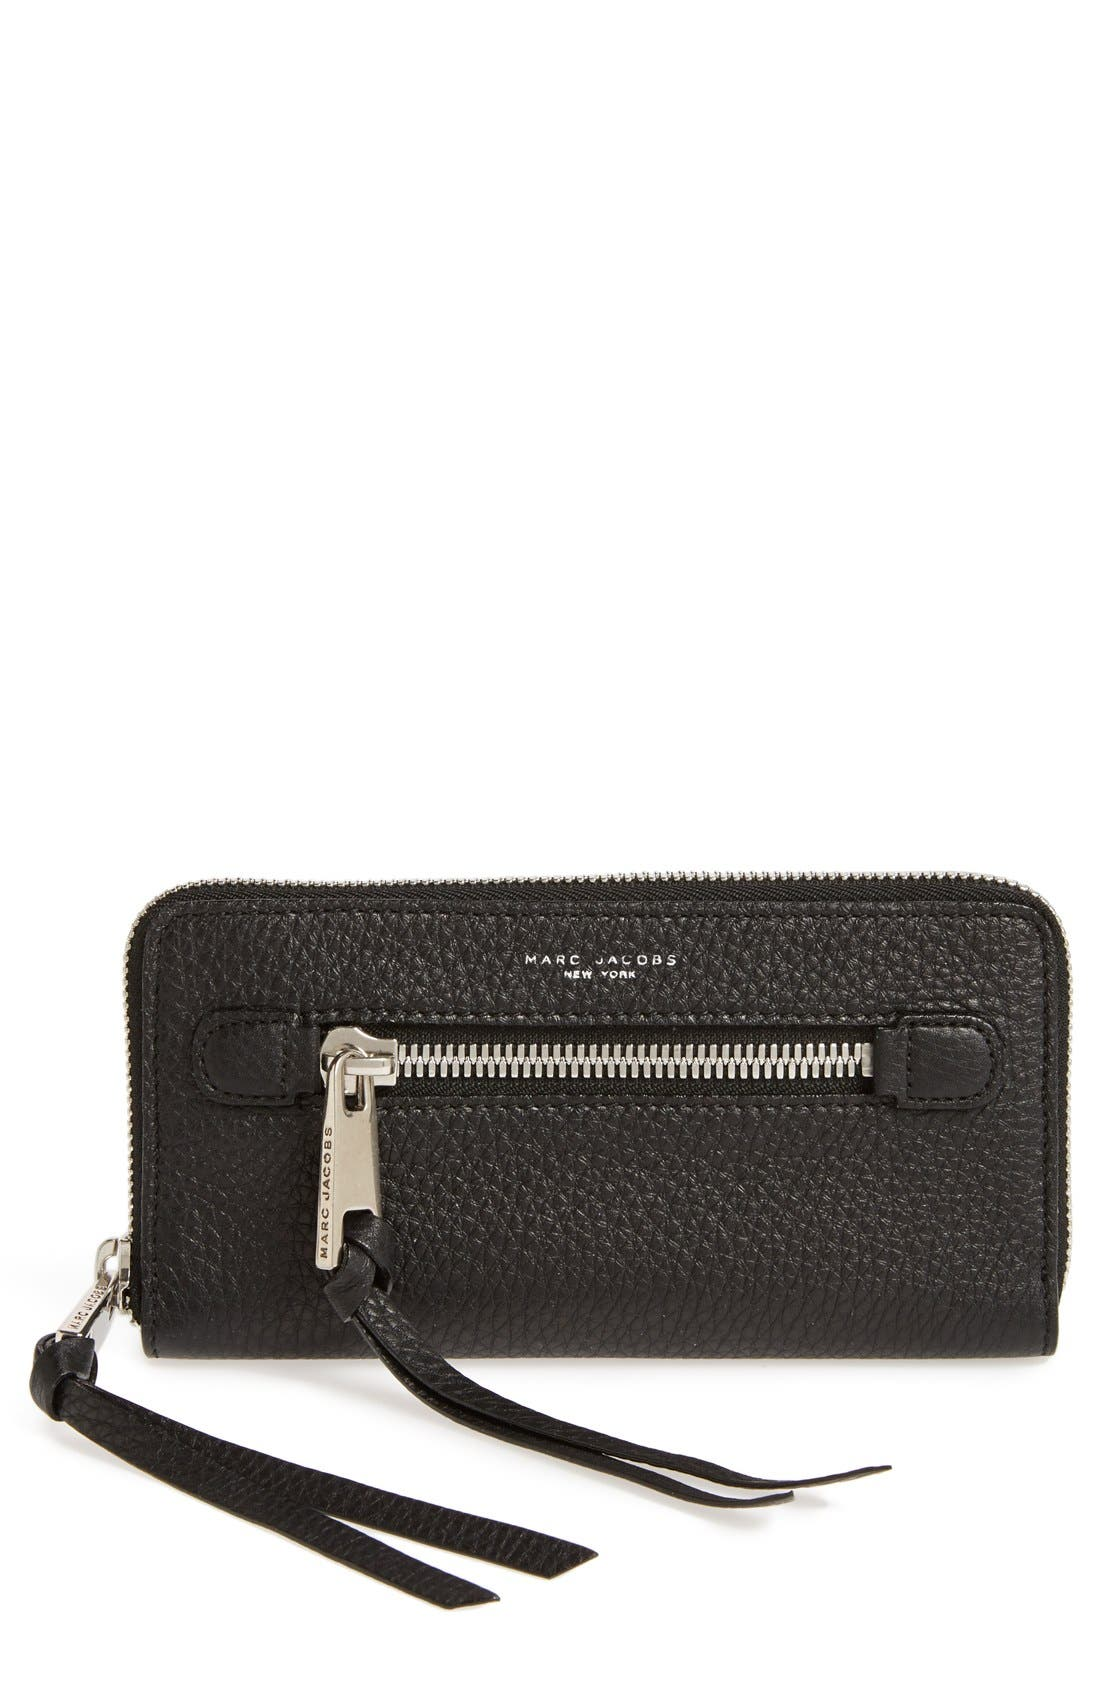 Main Image - MARC JACOBS 'Big Apple Deluxe' Calfskin Leather Wallet